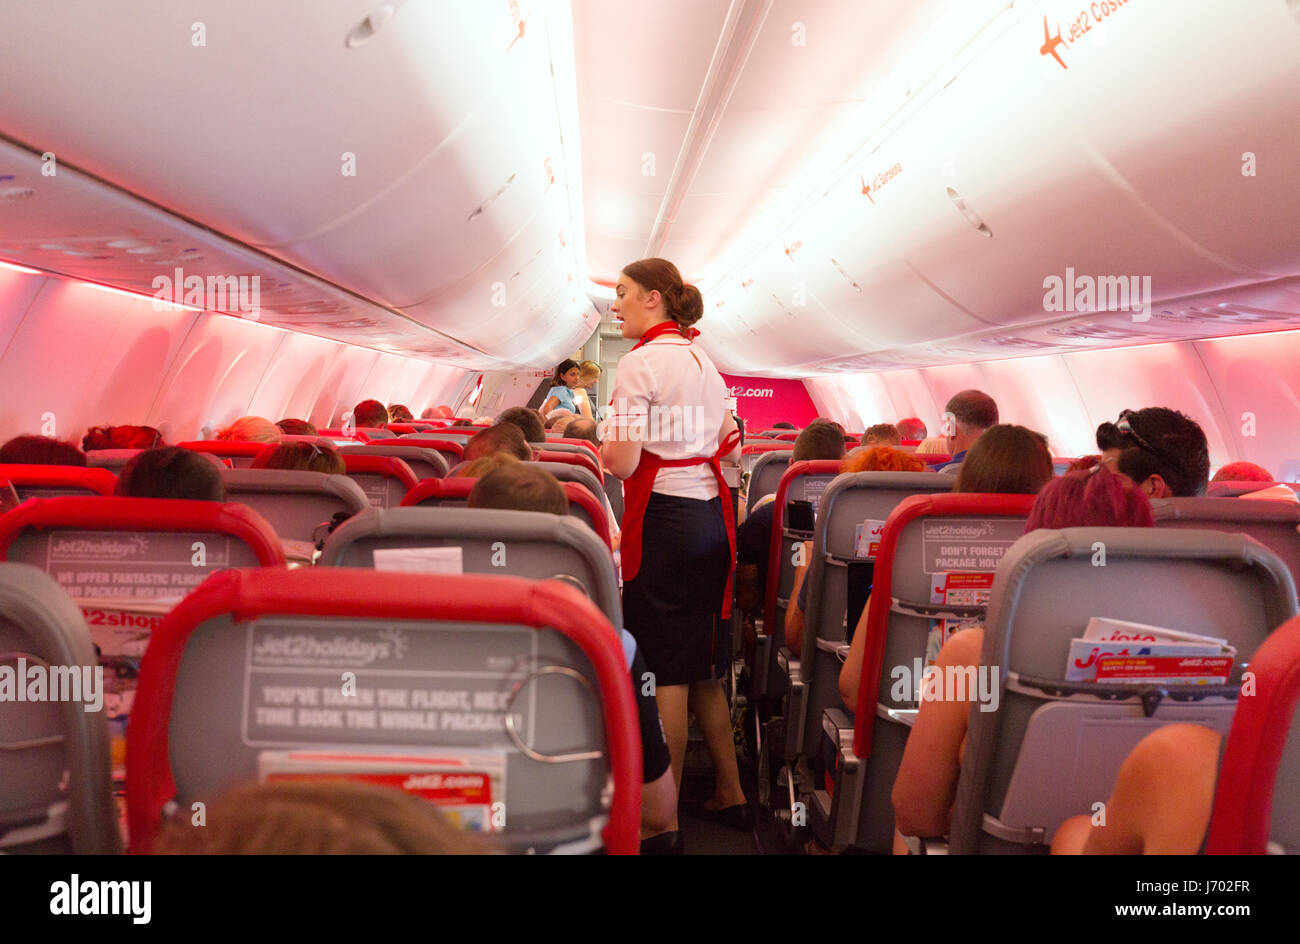 Jet2 airline flight attendant working in the airplane cabin, on a Boeing 737-800 flight from Lanzarote to UK - Stock Image